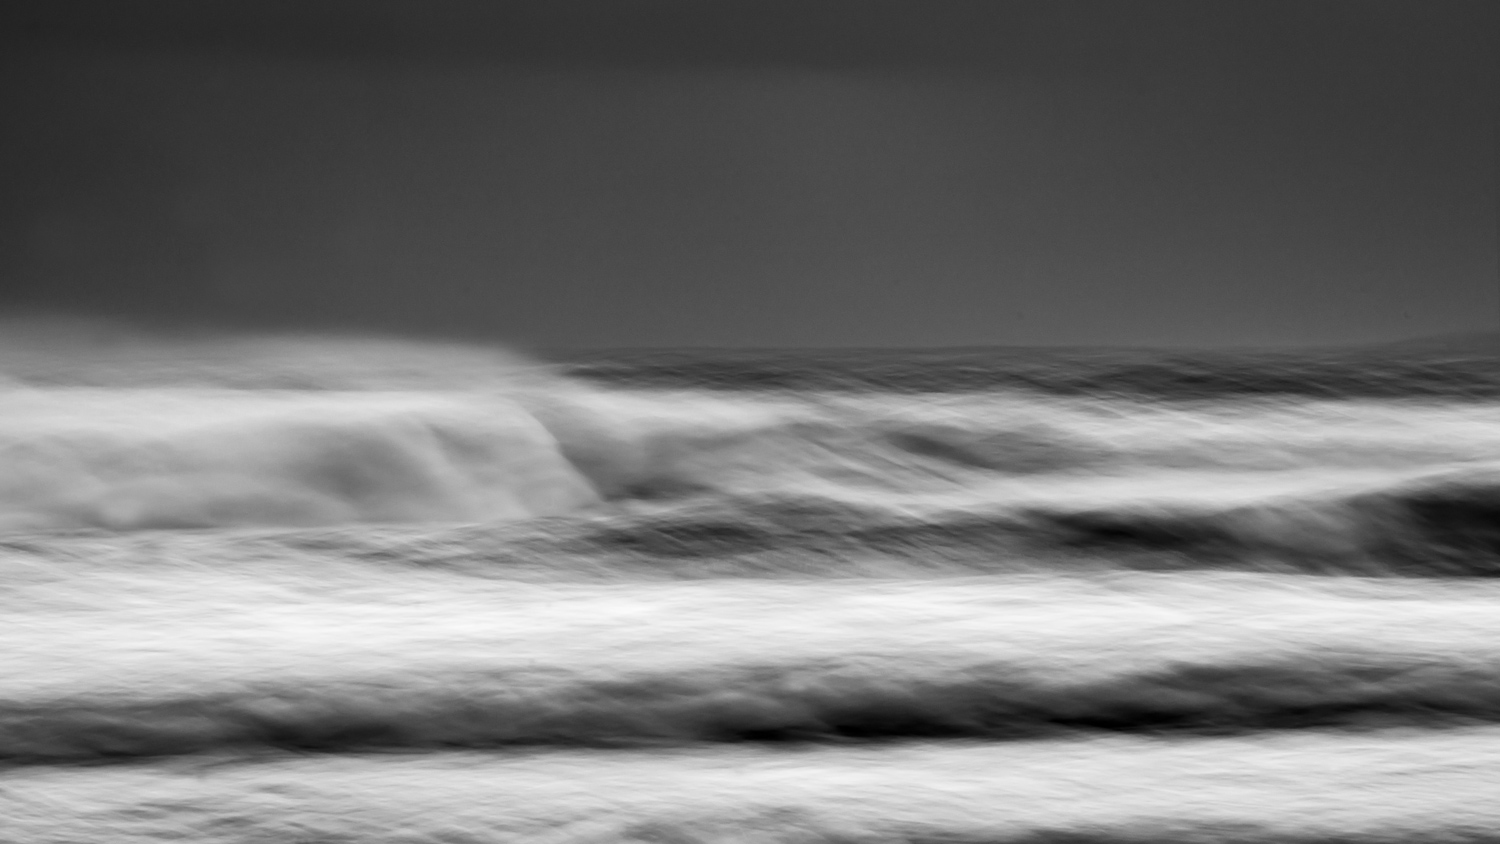 Onde in movimento